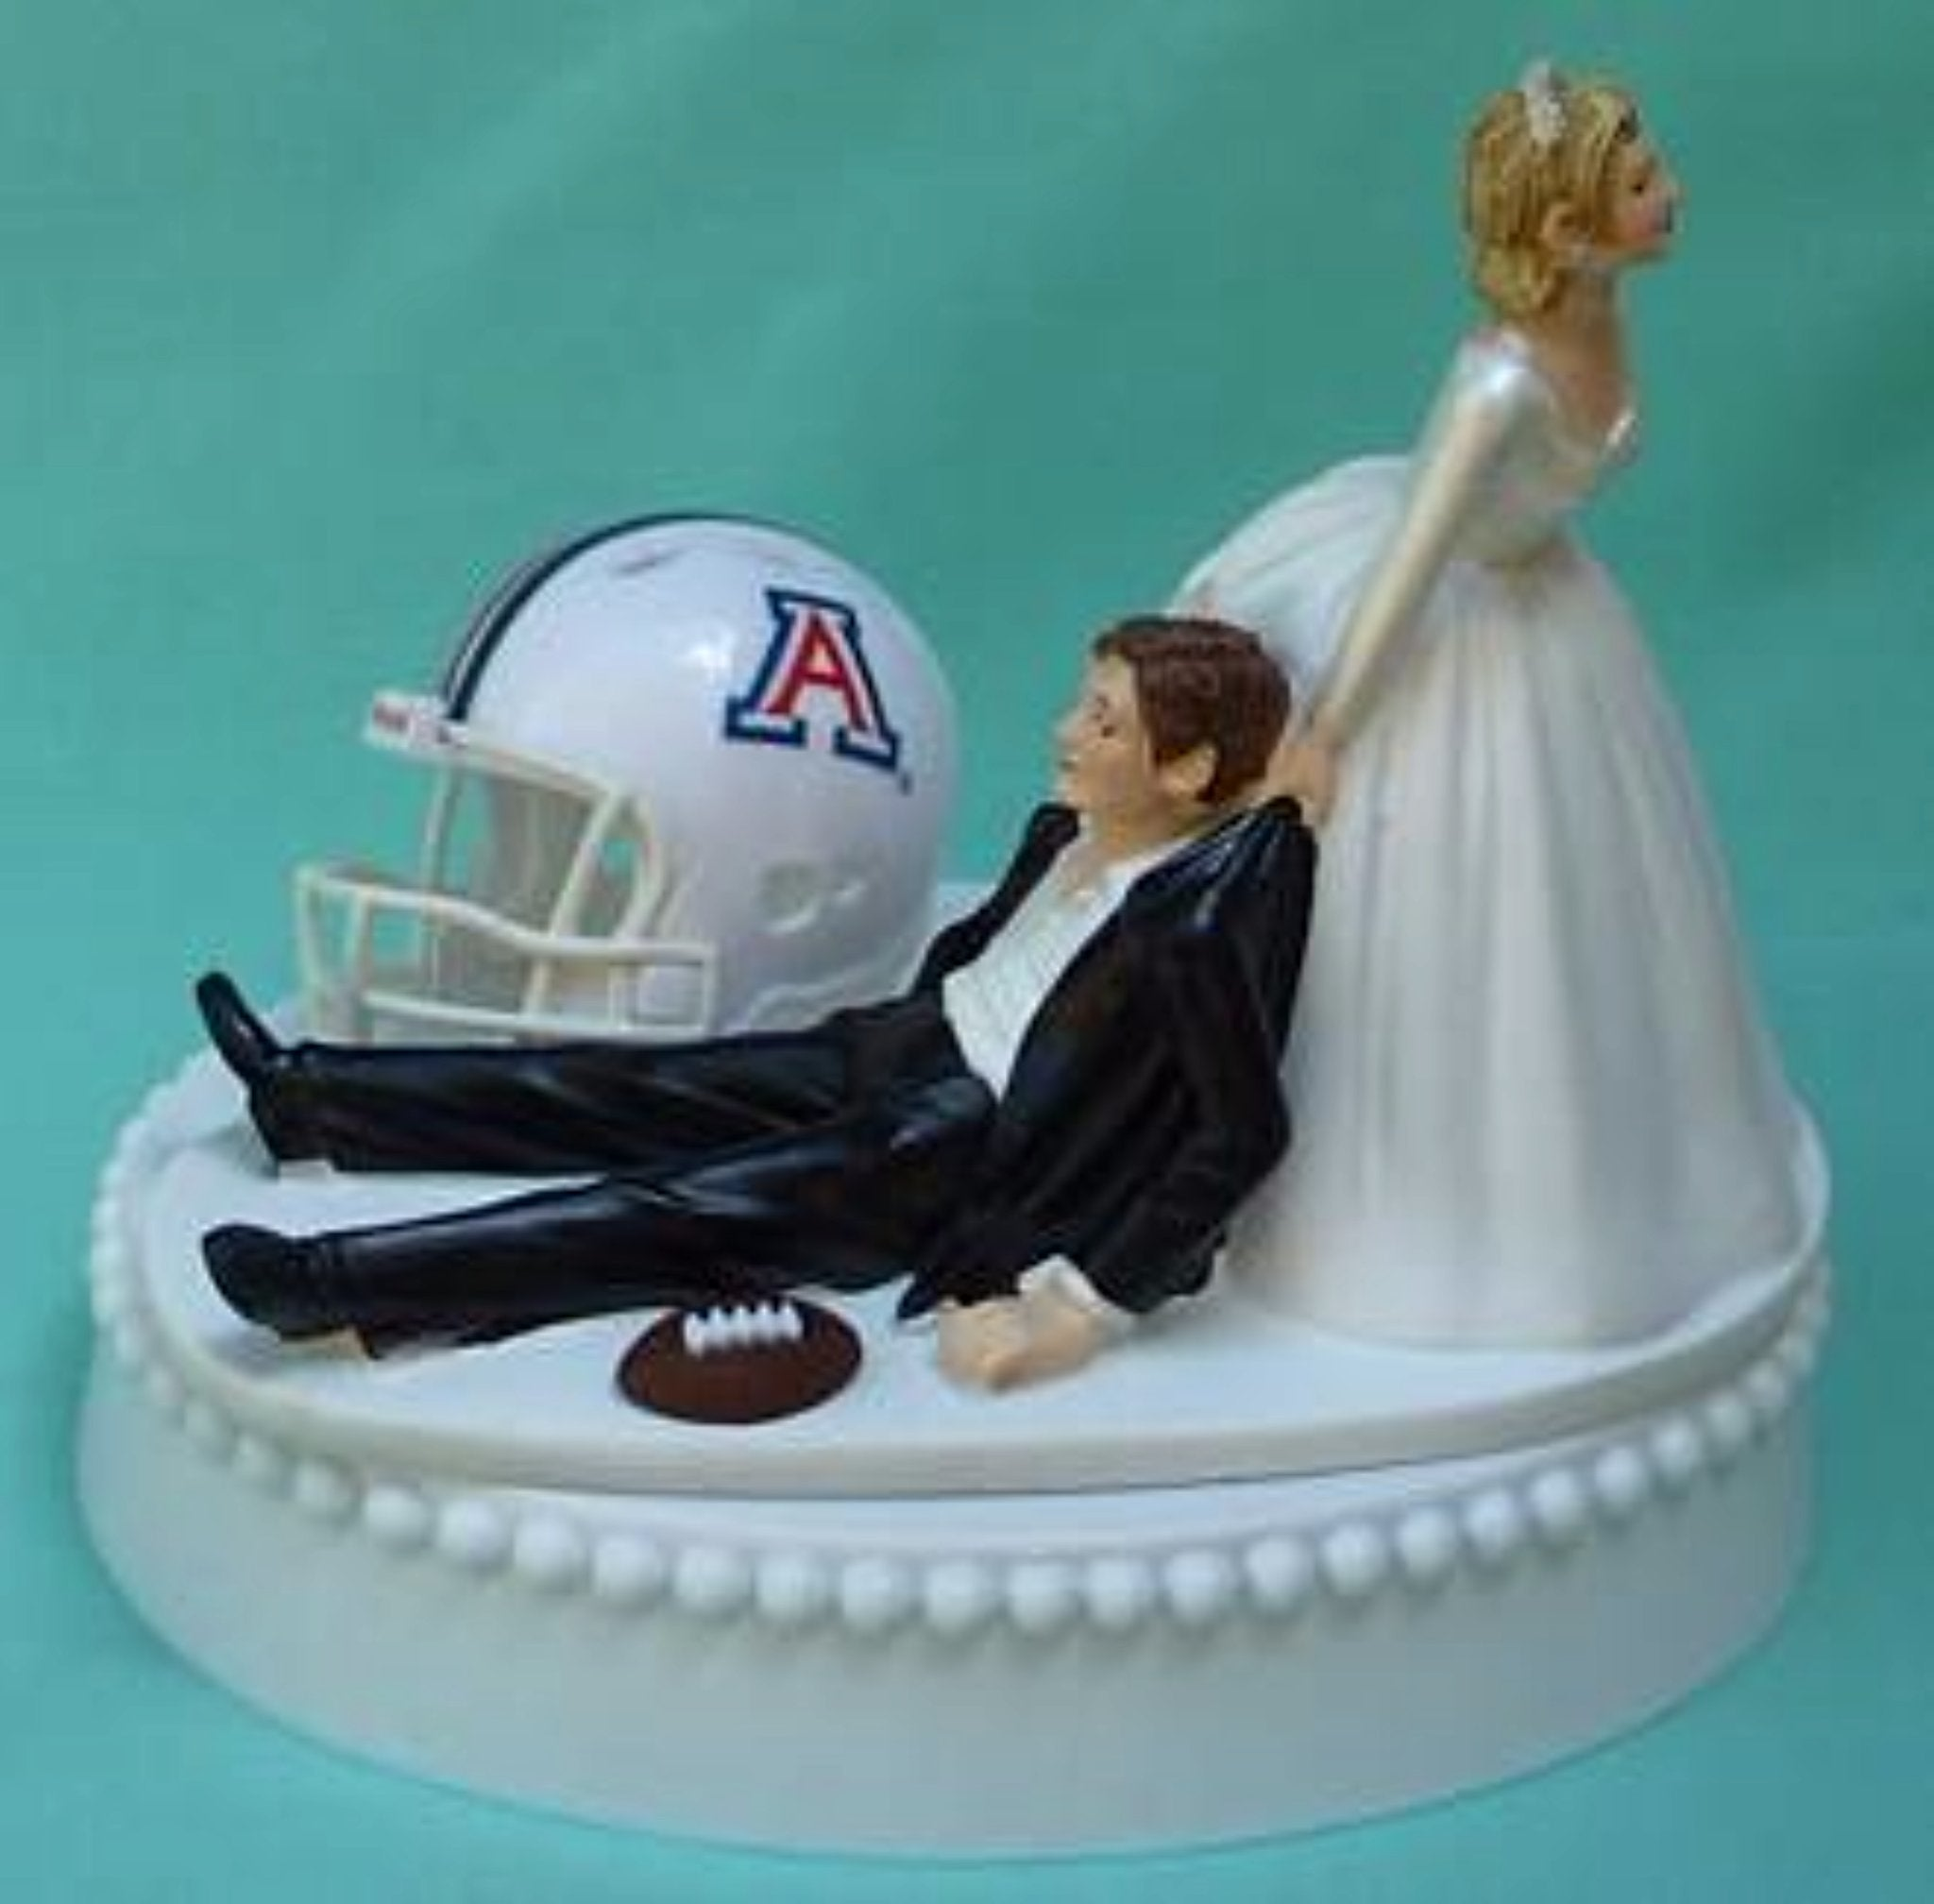 University of Arizona wedding cake topper UA Wildcats football U of A groom's cake top funny bride dragging groom humorous reception Fun Wedding Things gift idea